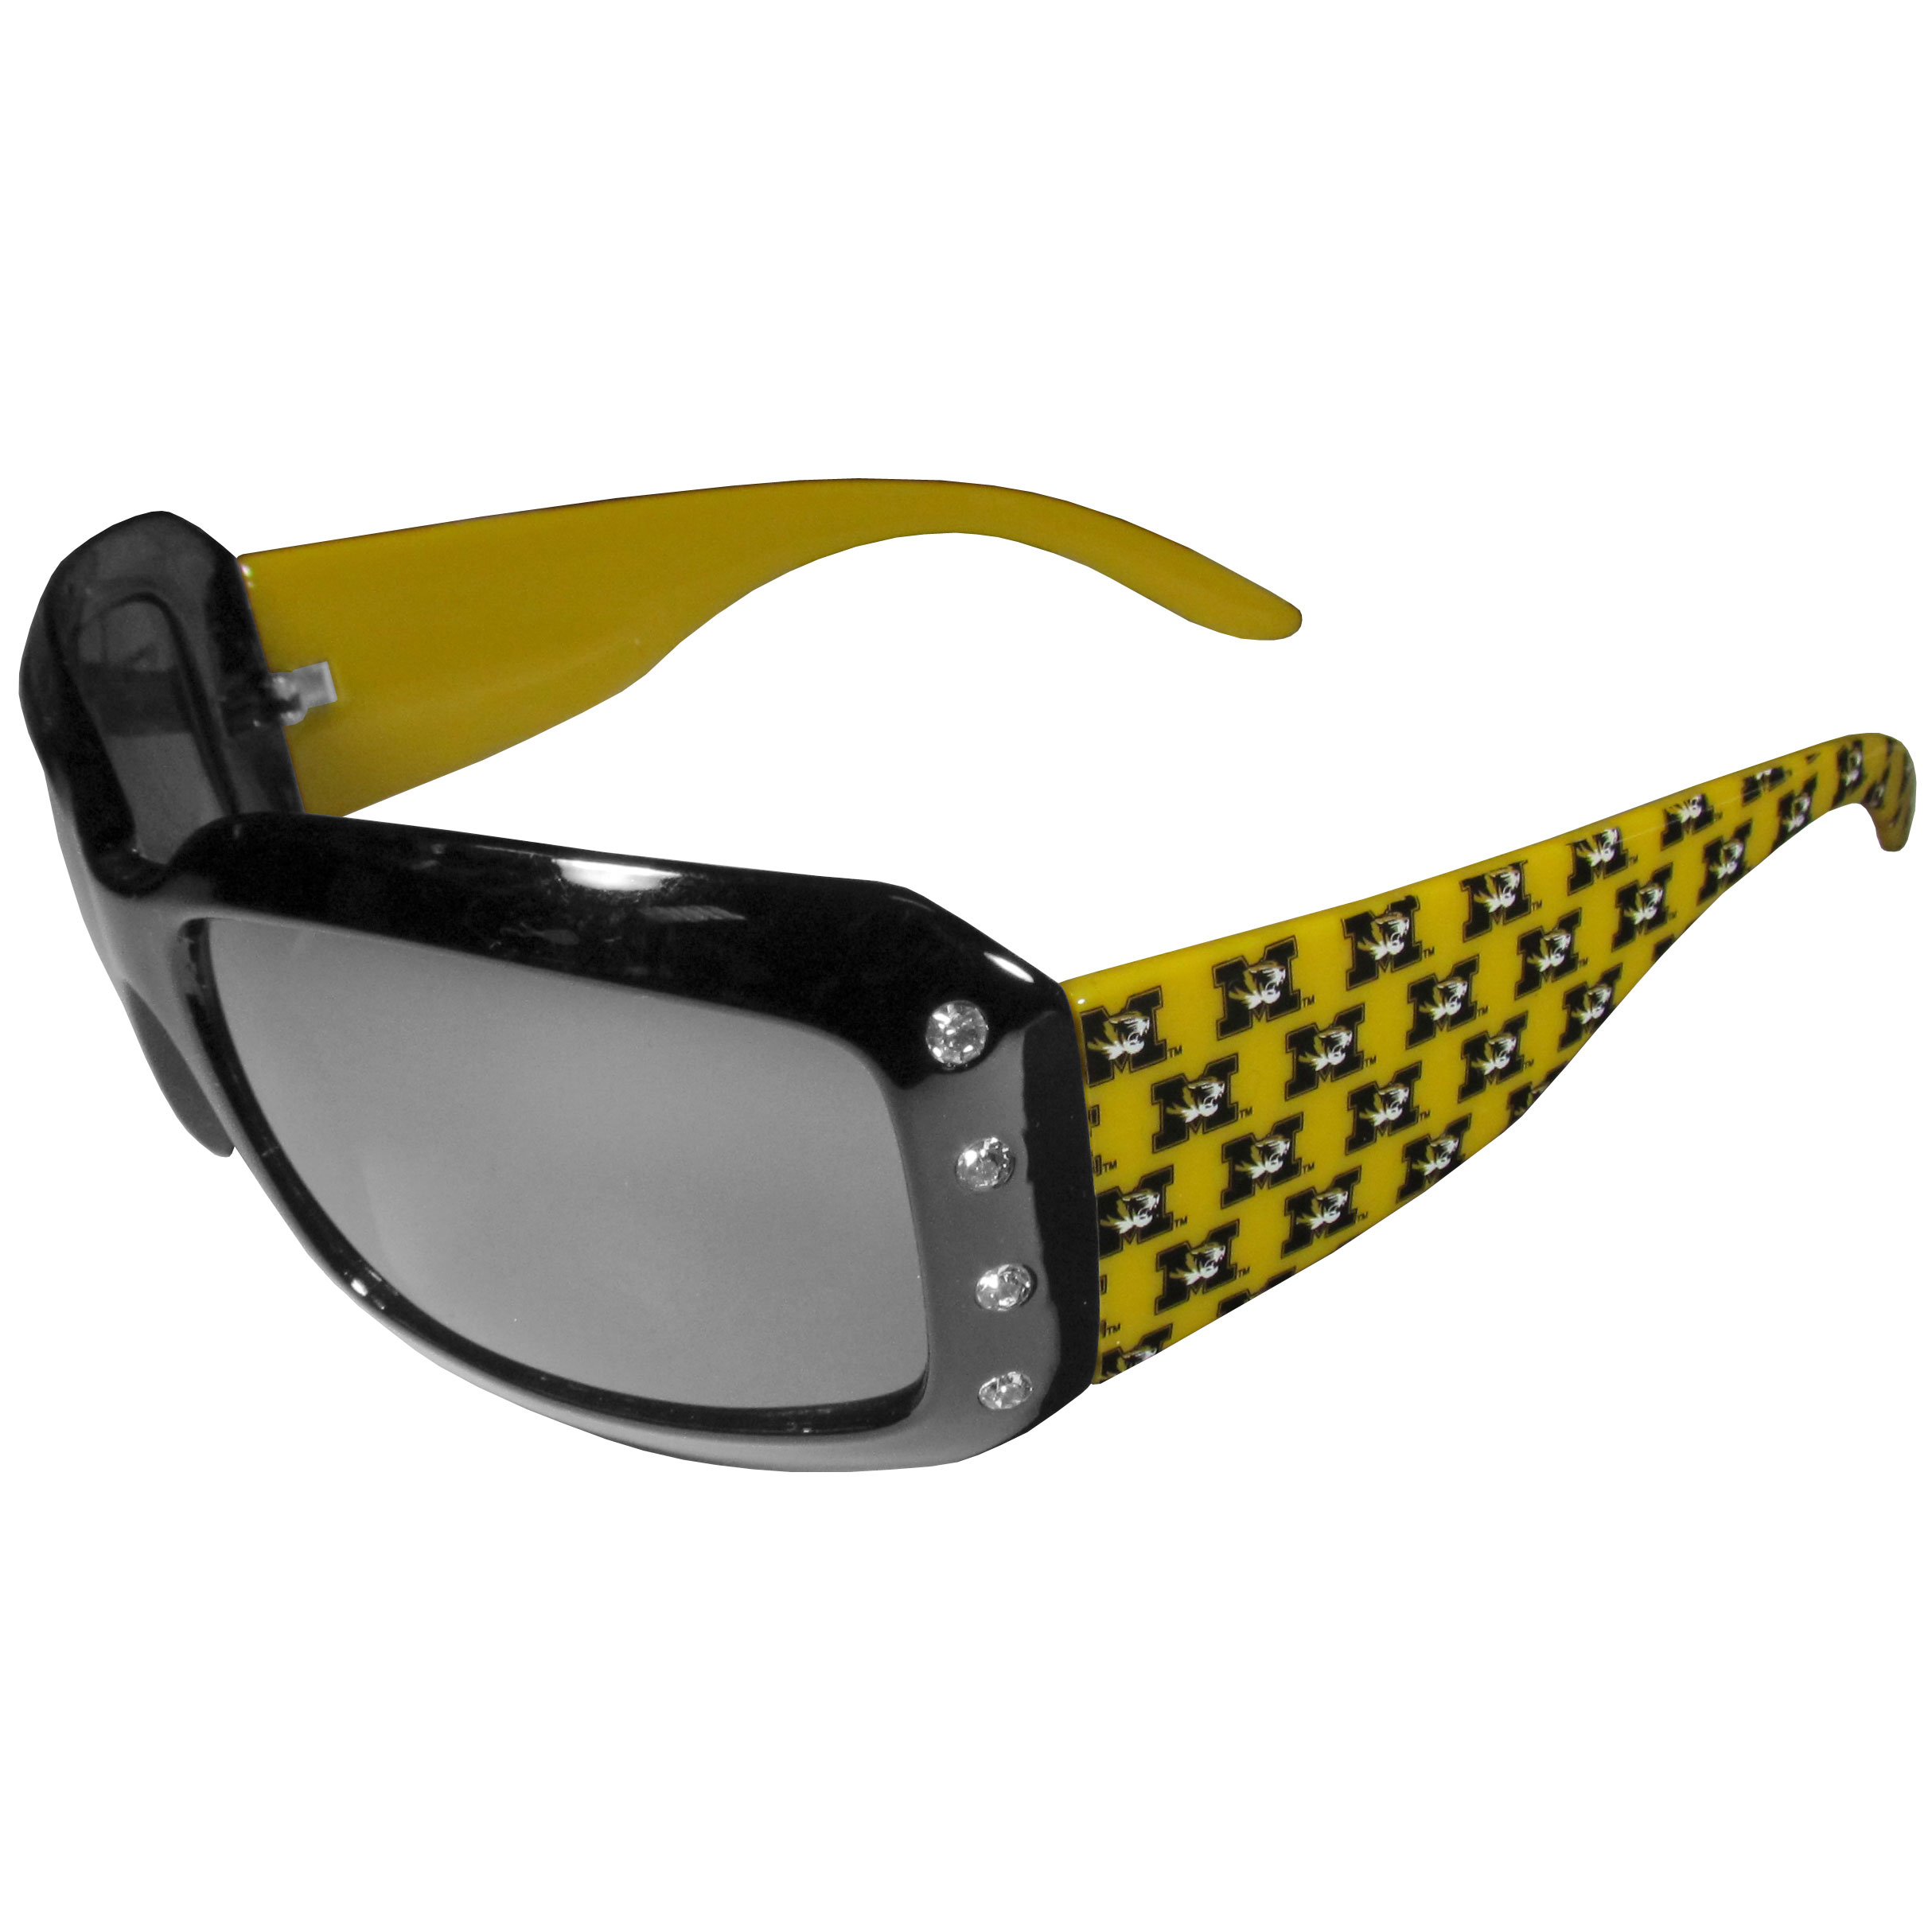 Missouri Tigers Designer Women's Sunglasses - Our designer women's sunglasses have a repeating Missouri Tigers logo design on the team colored arms and rhinestone accents. 100% UVA/UVB protection.